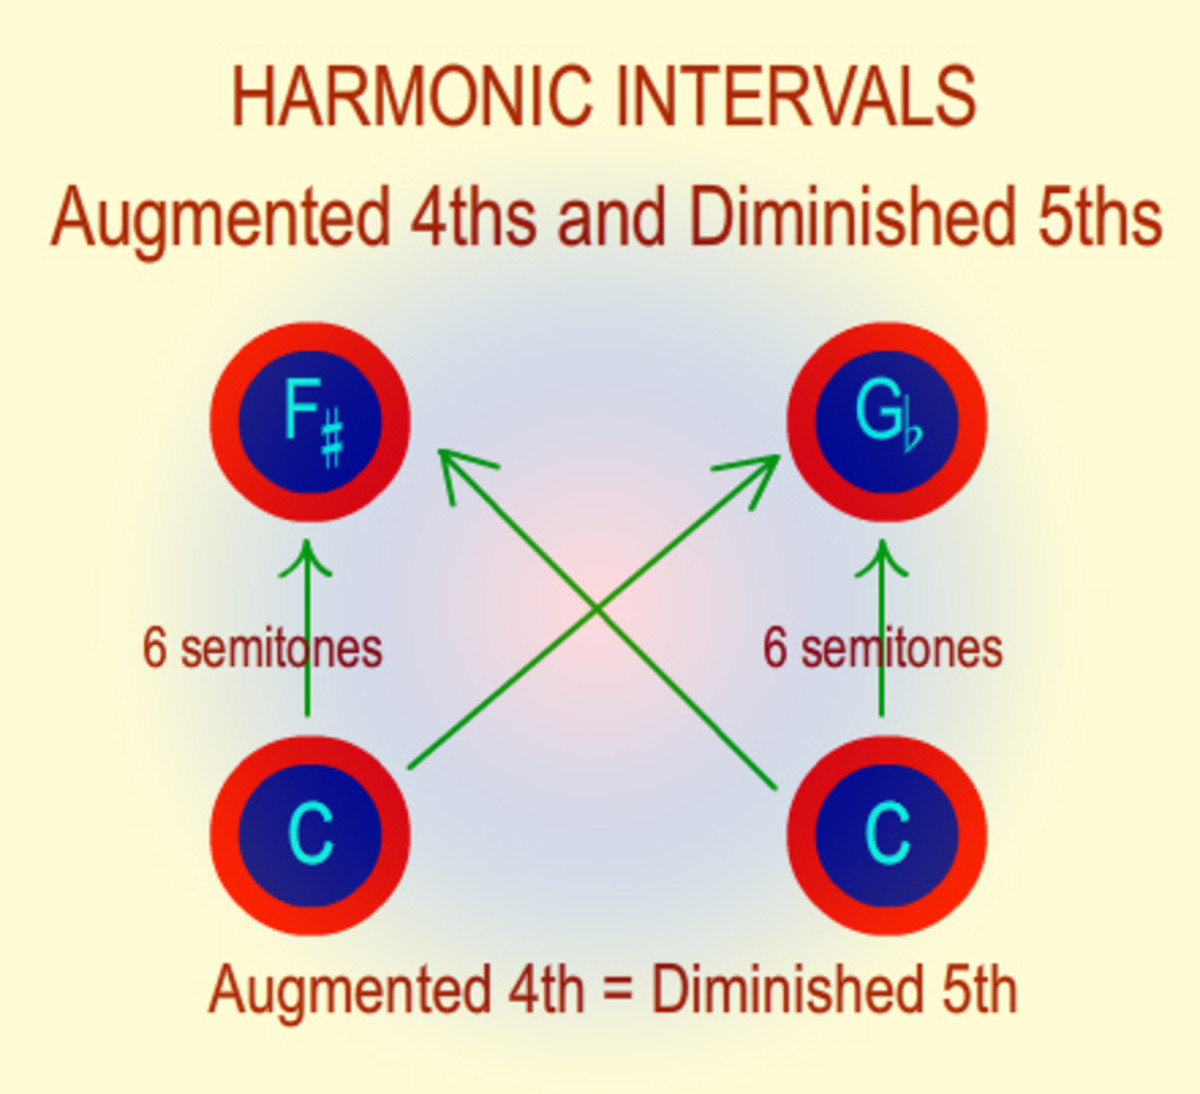 Train Your Ear to Identify Harmonic Intervals in Music